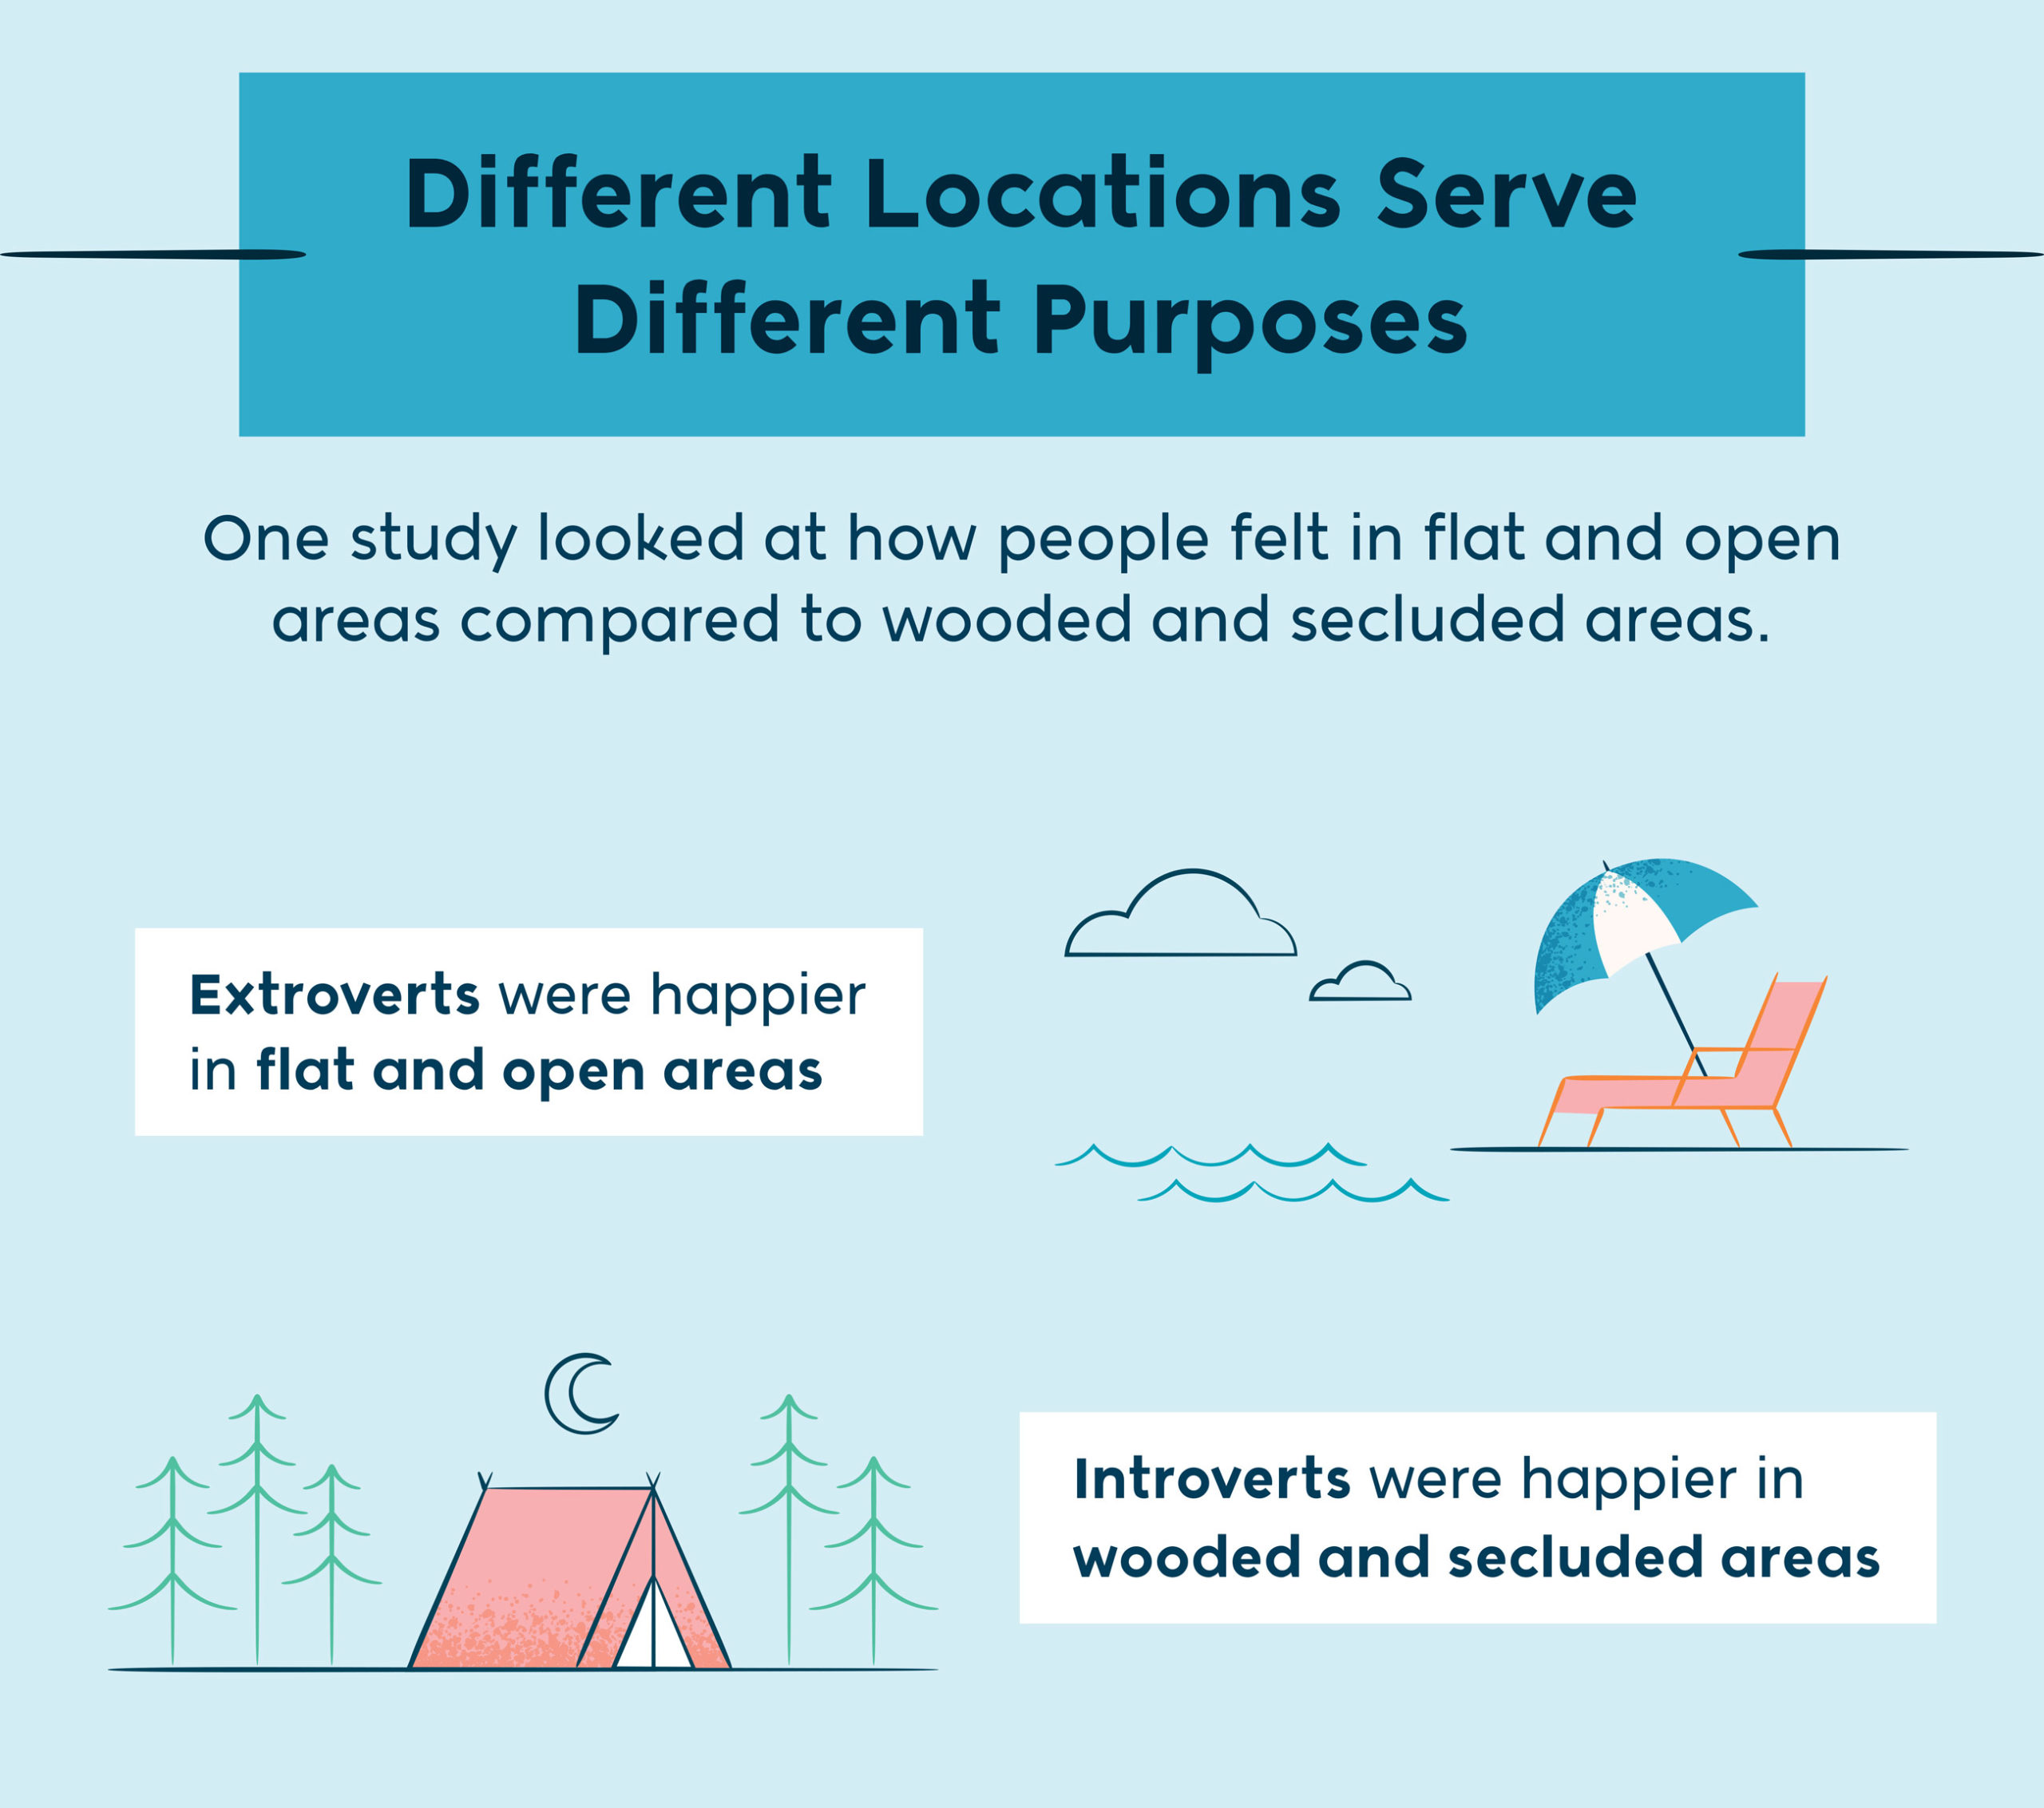 different locations serve different purposes